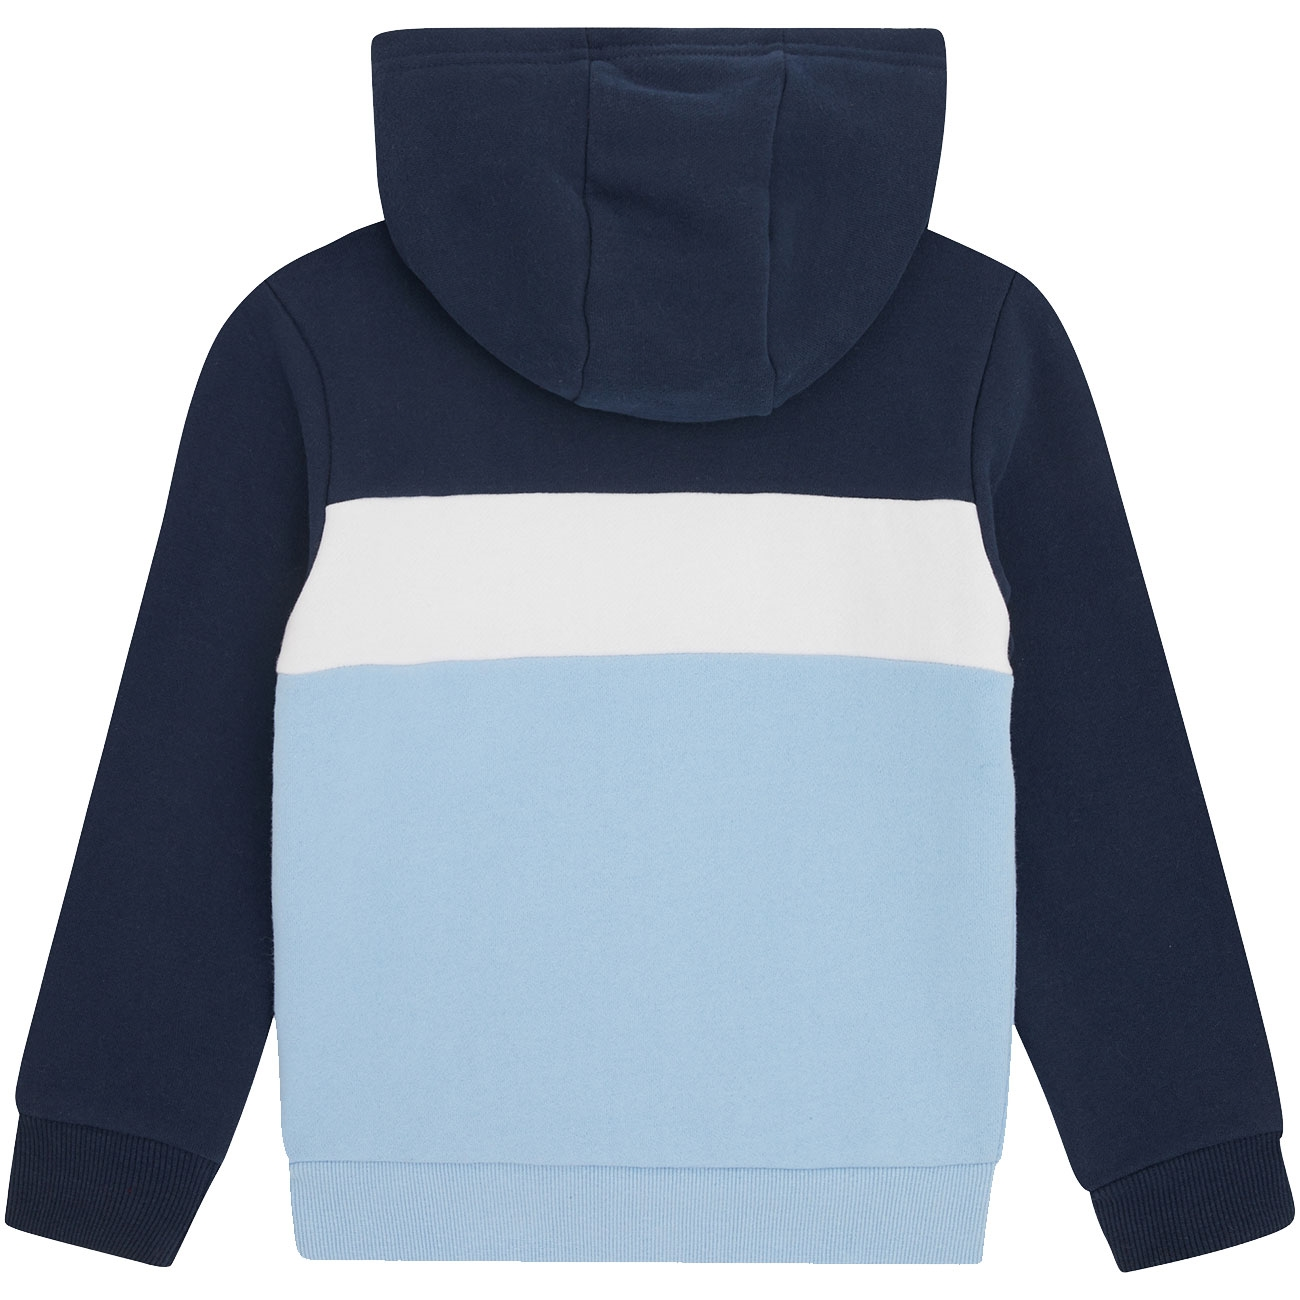 Ellesse-vincano-zip-hoodie-navy-blaa-hvid-white-light-blue